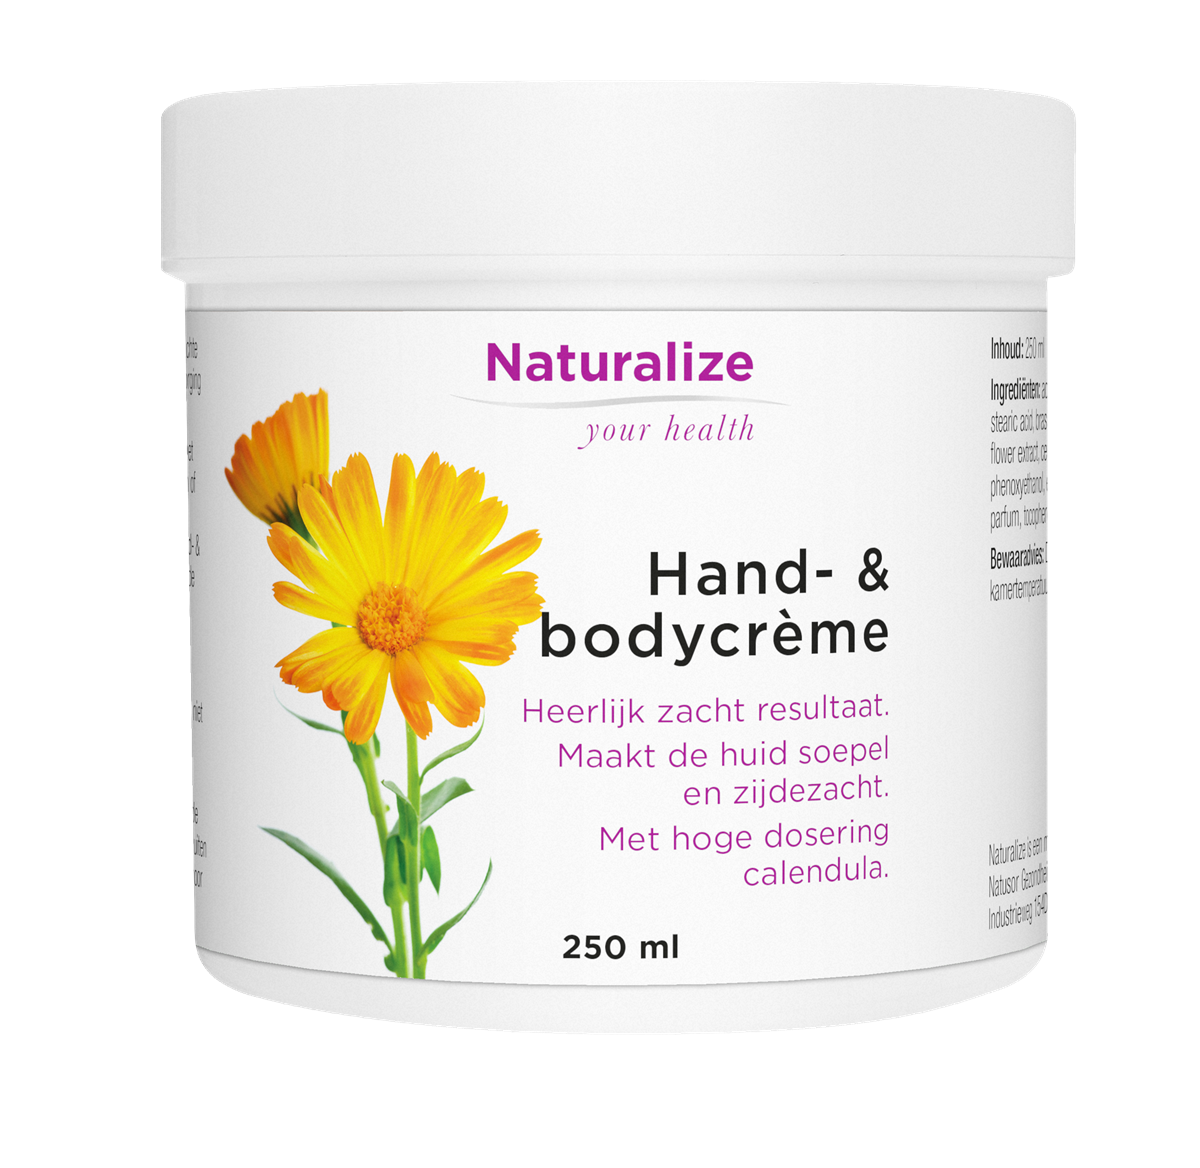 Naturalize Hand- & bodycrème (250 milliliter)